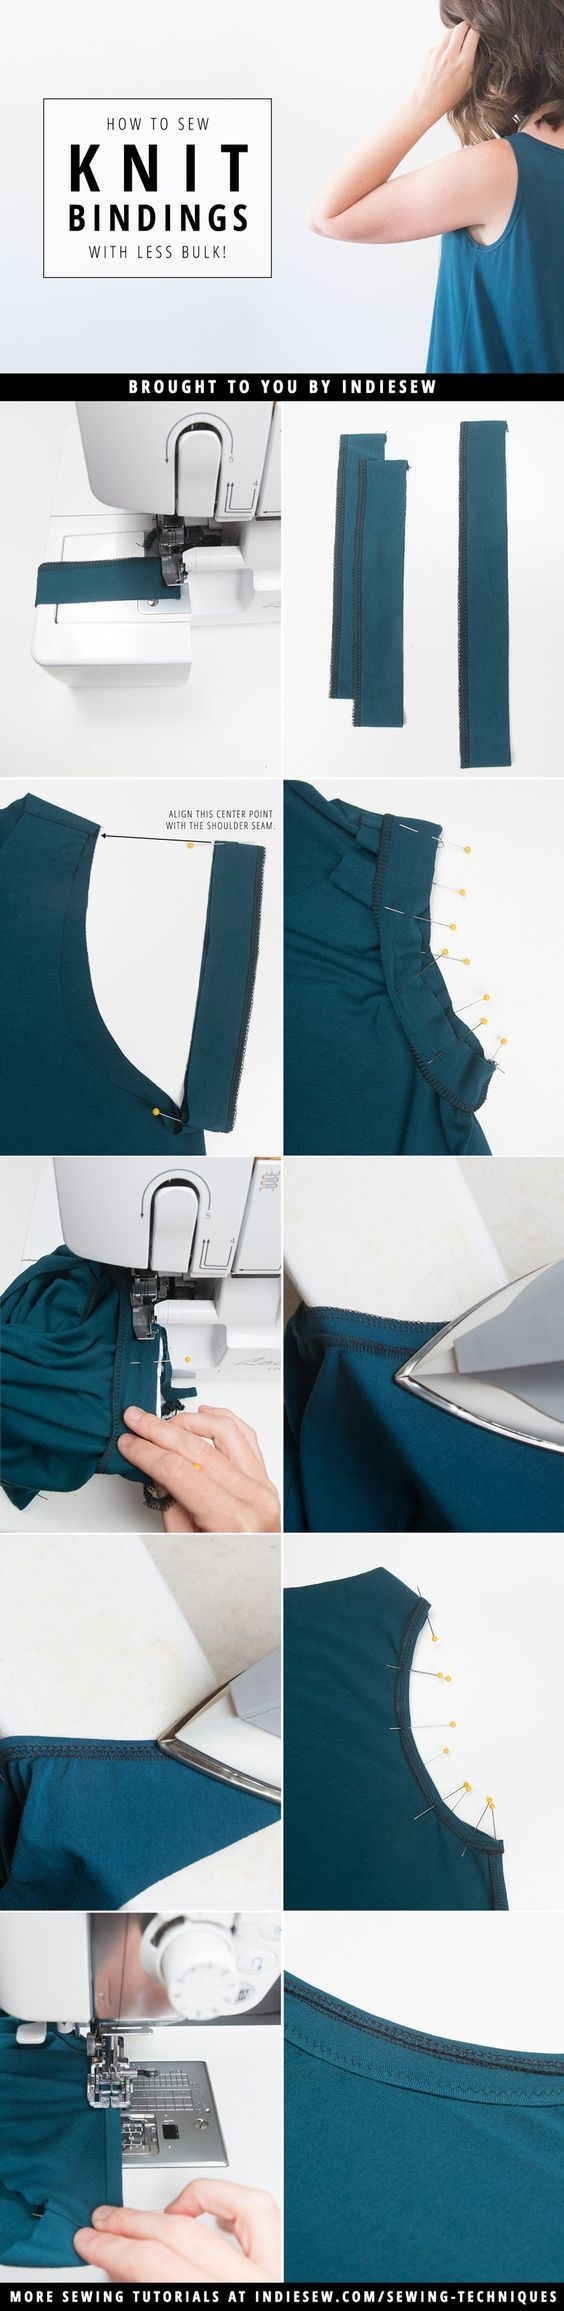 Check out this new method for binding the Vallynne (or any knit garment!) that reduces bulk and imitates ready-to-wear techniques. Go here to see how to sew knit bindings. Get a weekly summary of new patterns sent to your inbox every Saturday: